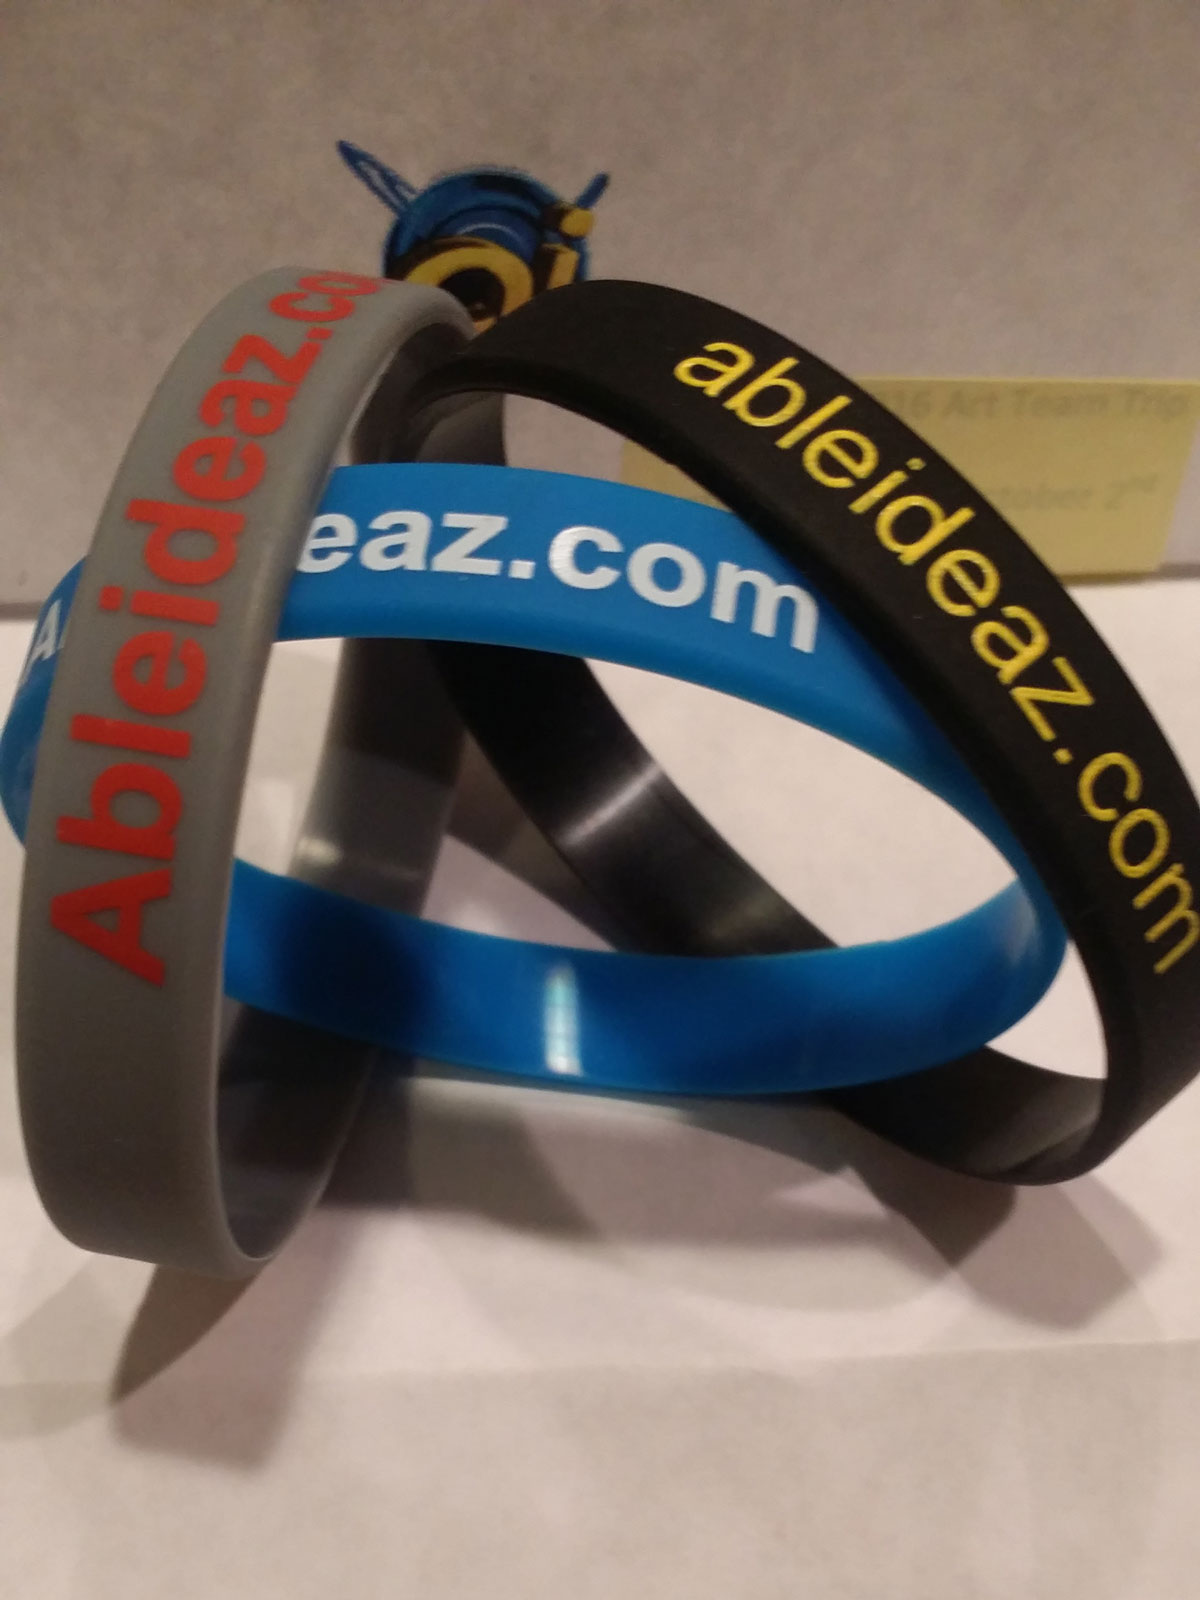 Able Ideaz Wristband